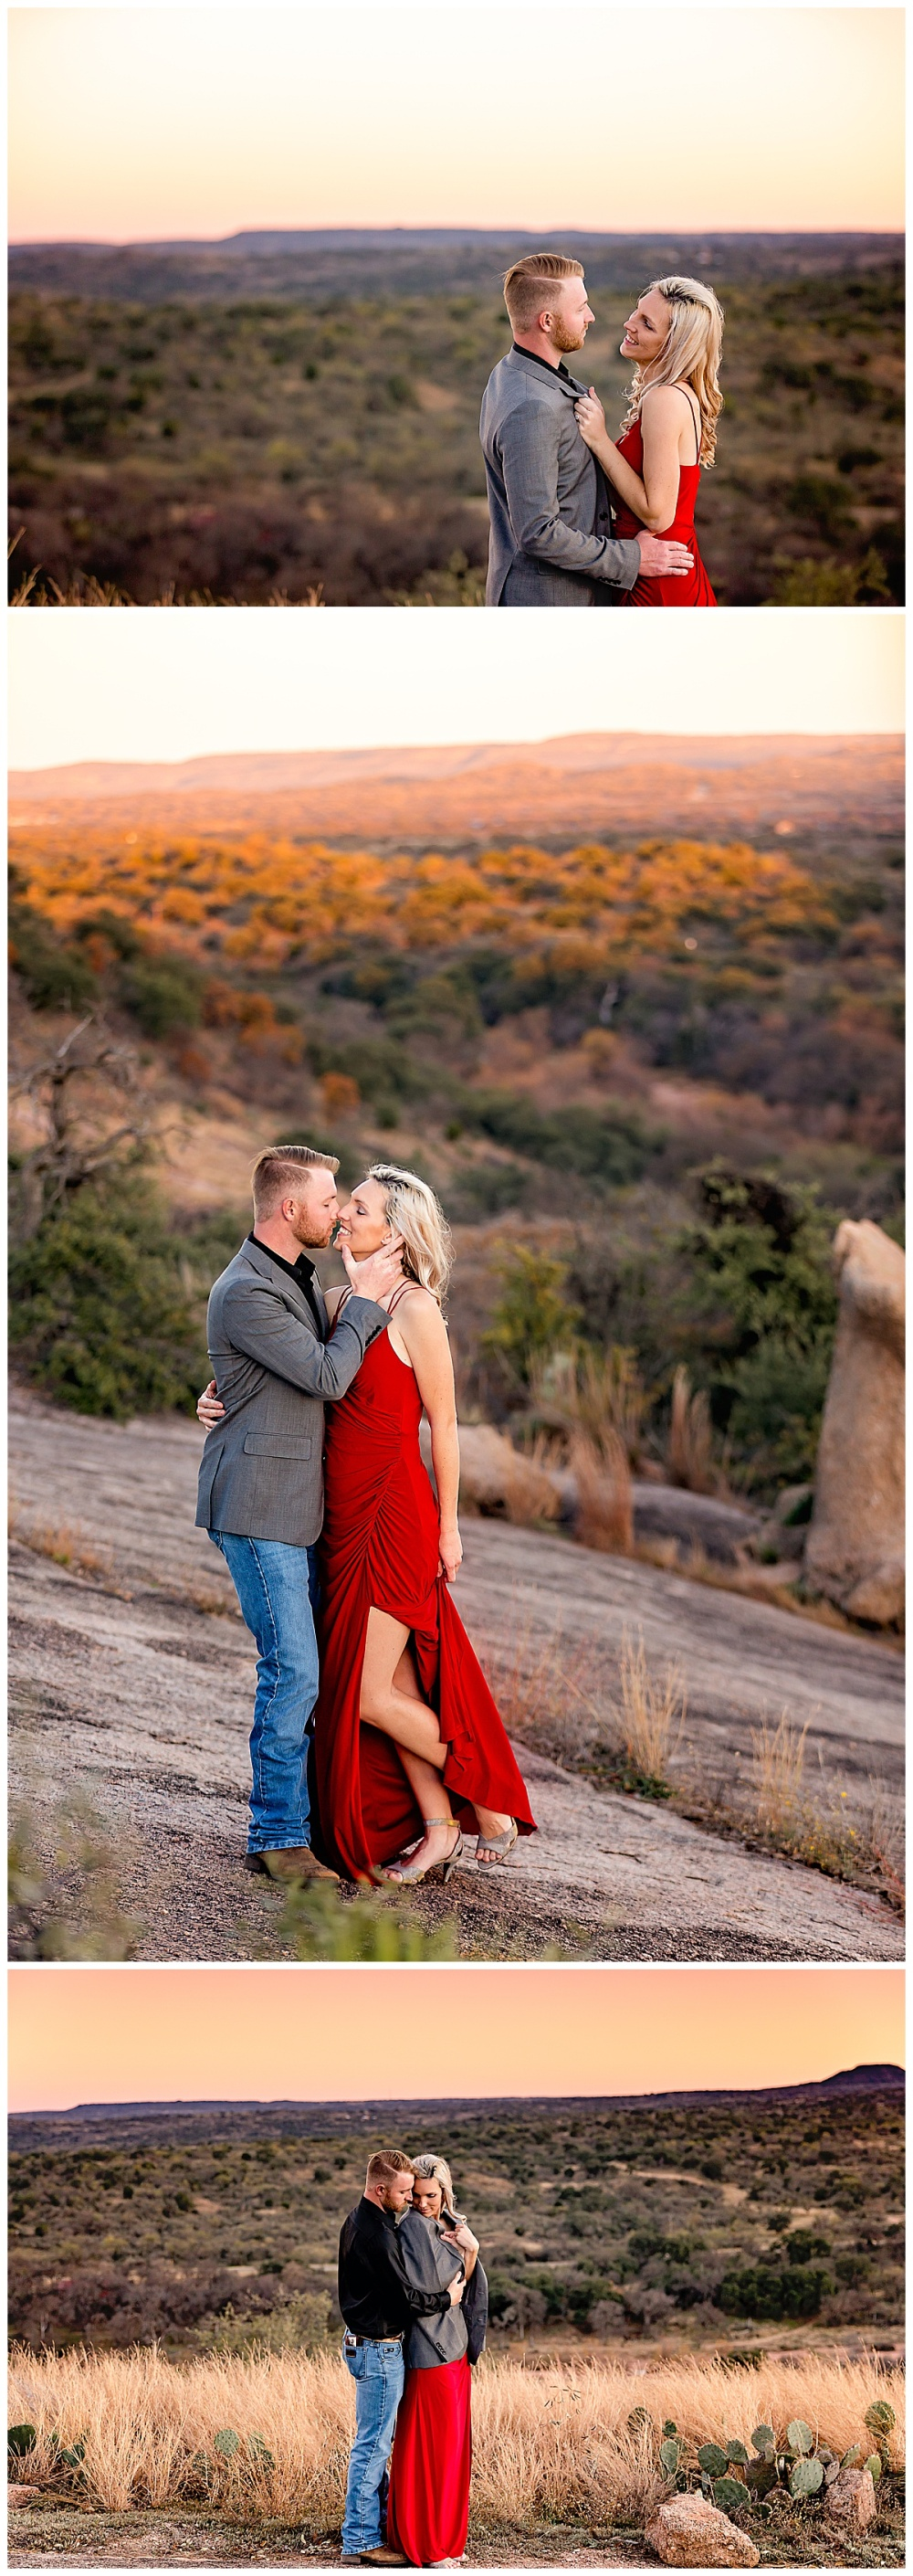 South-Texas-Wedding-Photographer-Engagement-Photos-Enchanted-Rock-Fredericksburg-Sunset-Couples-Carly-Barton-Photography_0009.jpg